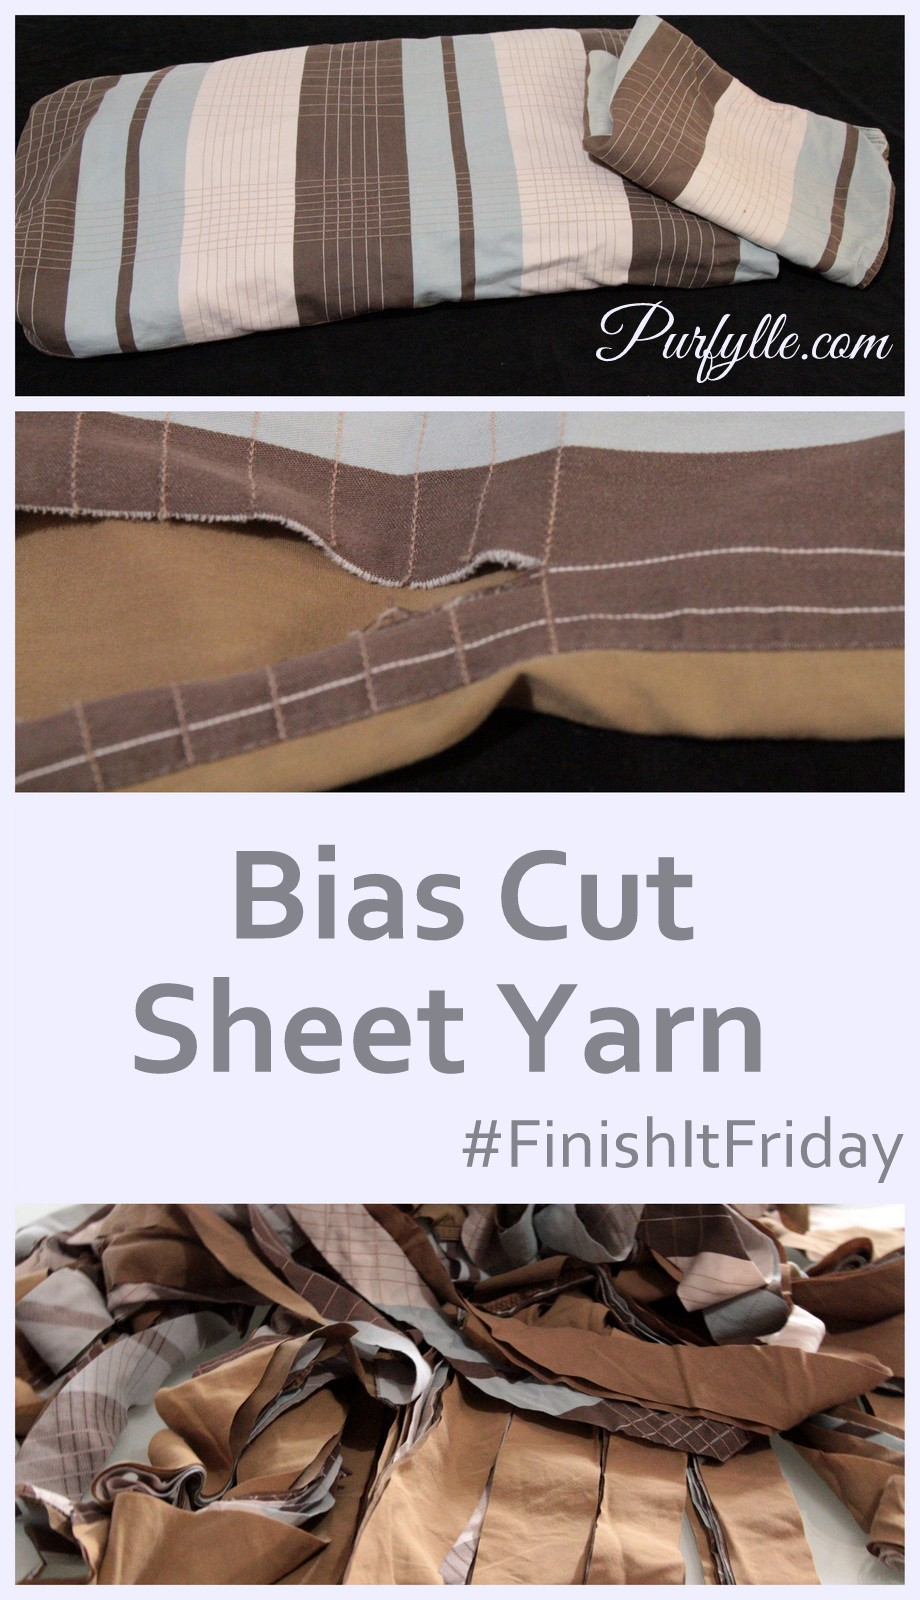 Bias Cut Sheet Yarn Rug #FinishItFriday